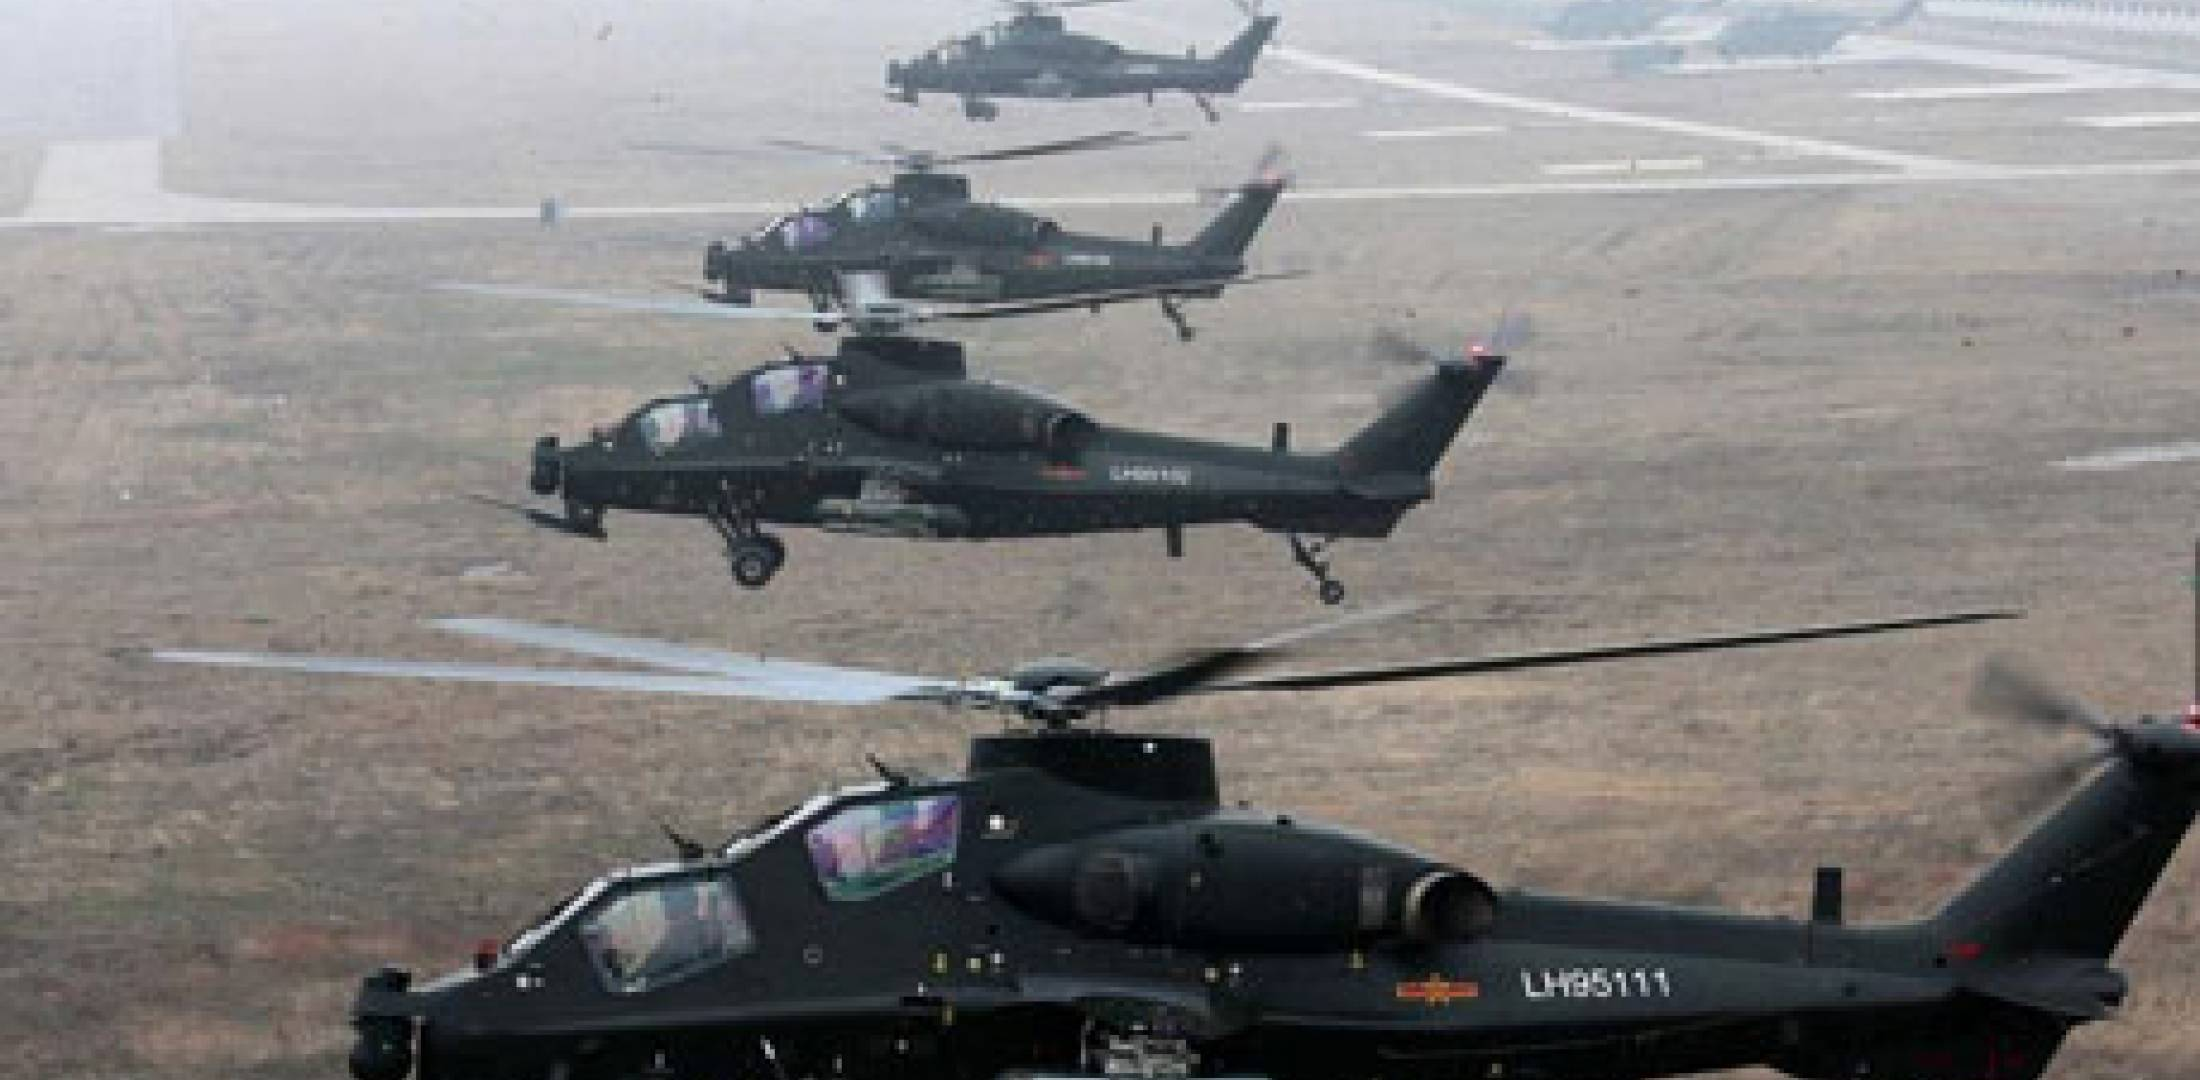 HQ Images of Chinese WZ-10 Gunship helicopters   Chinese